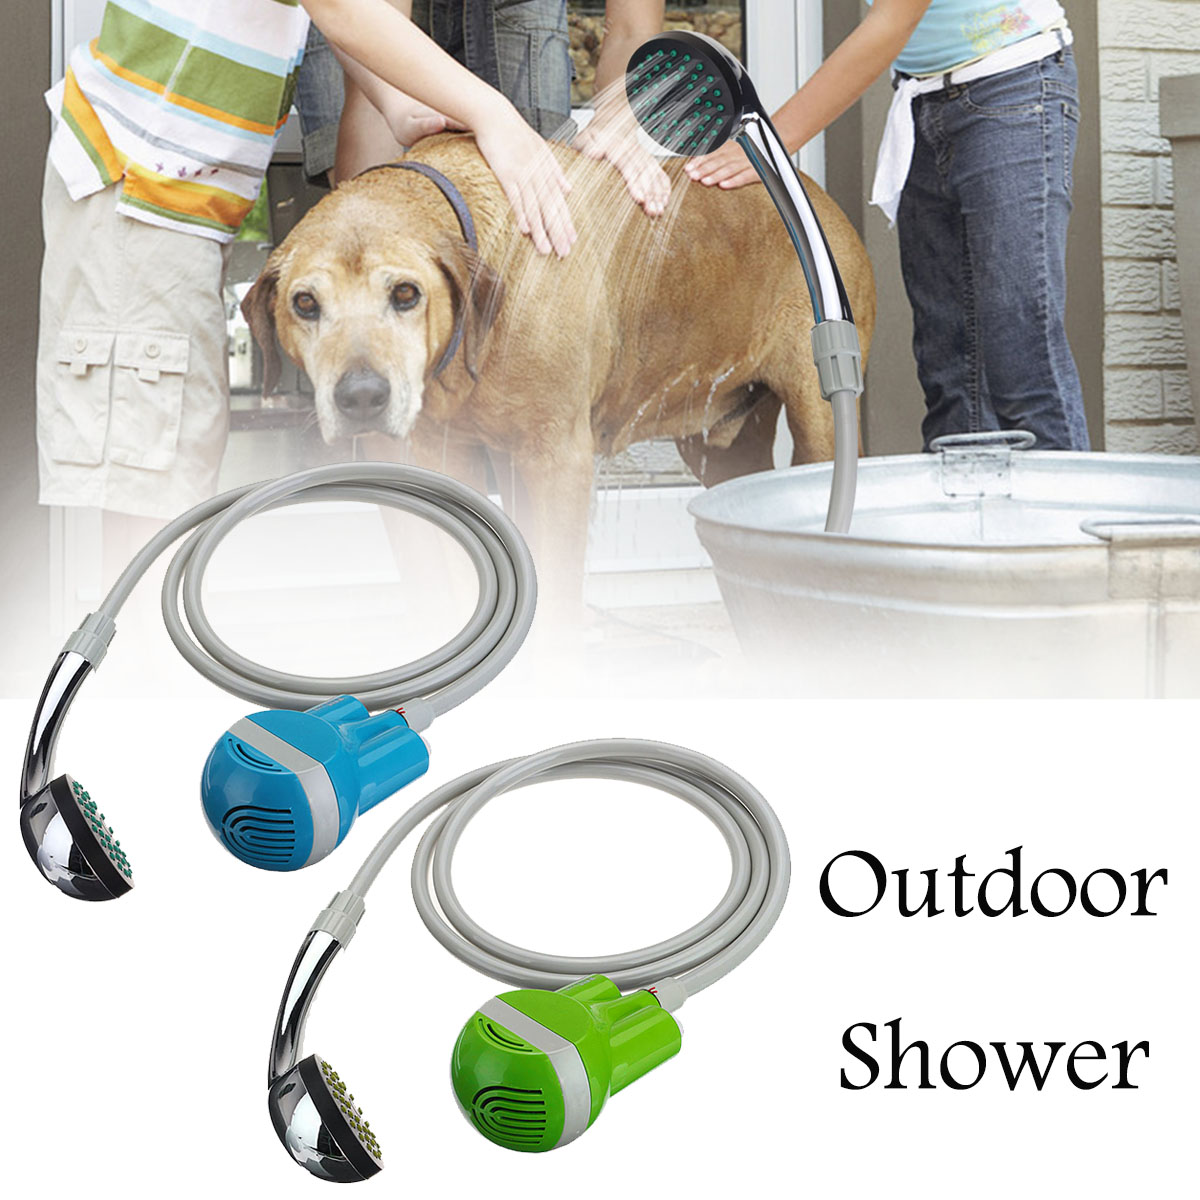 Alert Camping Shower Portable Shower Set Usb Car Shower Dc 12v Pump Pressure Shower Outdoor Camp Ducha Camping Pet Car Washer Back To Search Resultssports & Entertainment Camping & Hiking